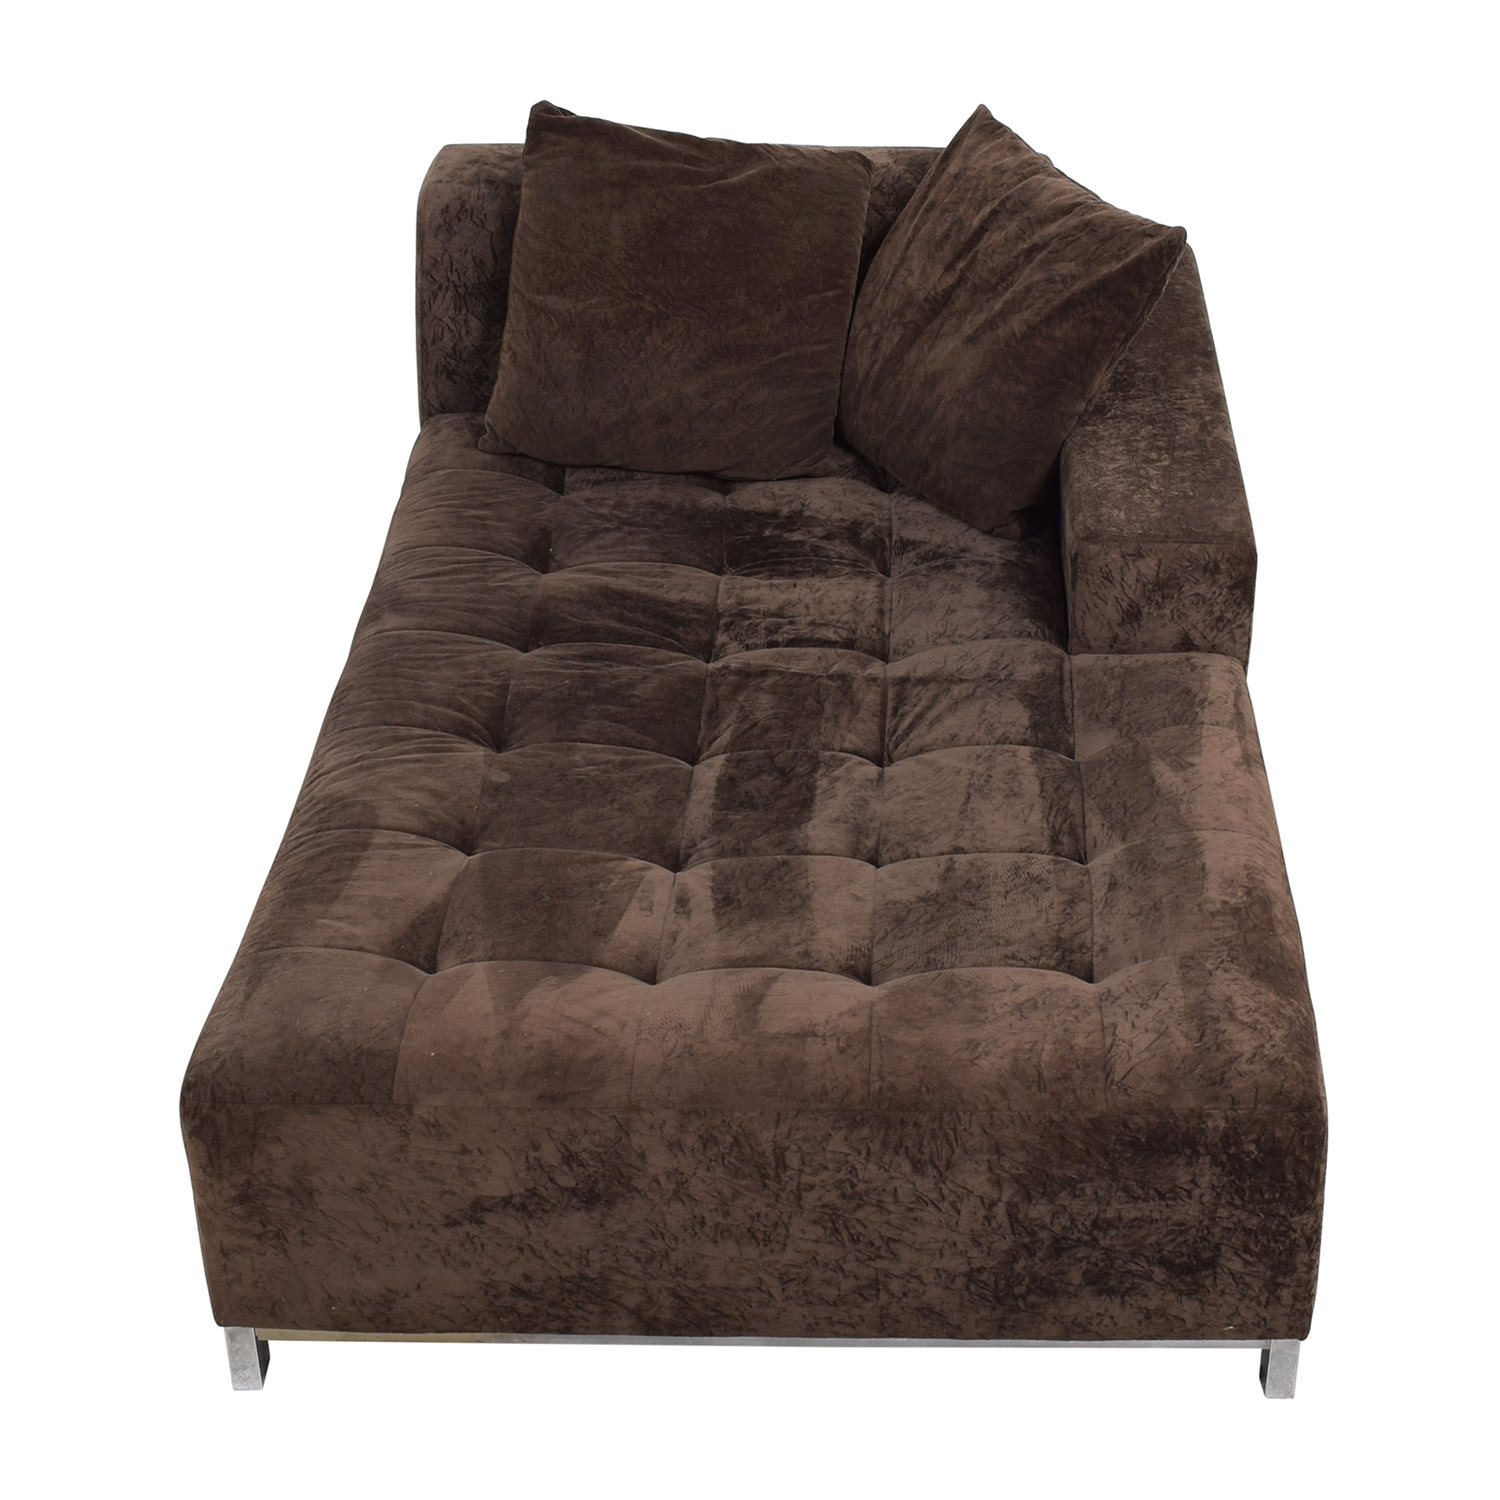 Safaviah Brown Tufted Chaise Lounge / Sofas